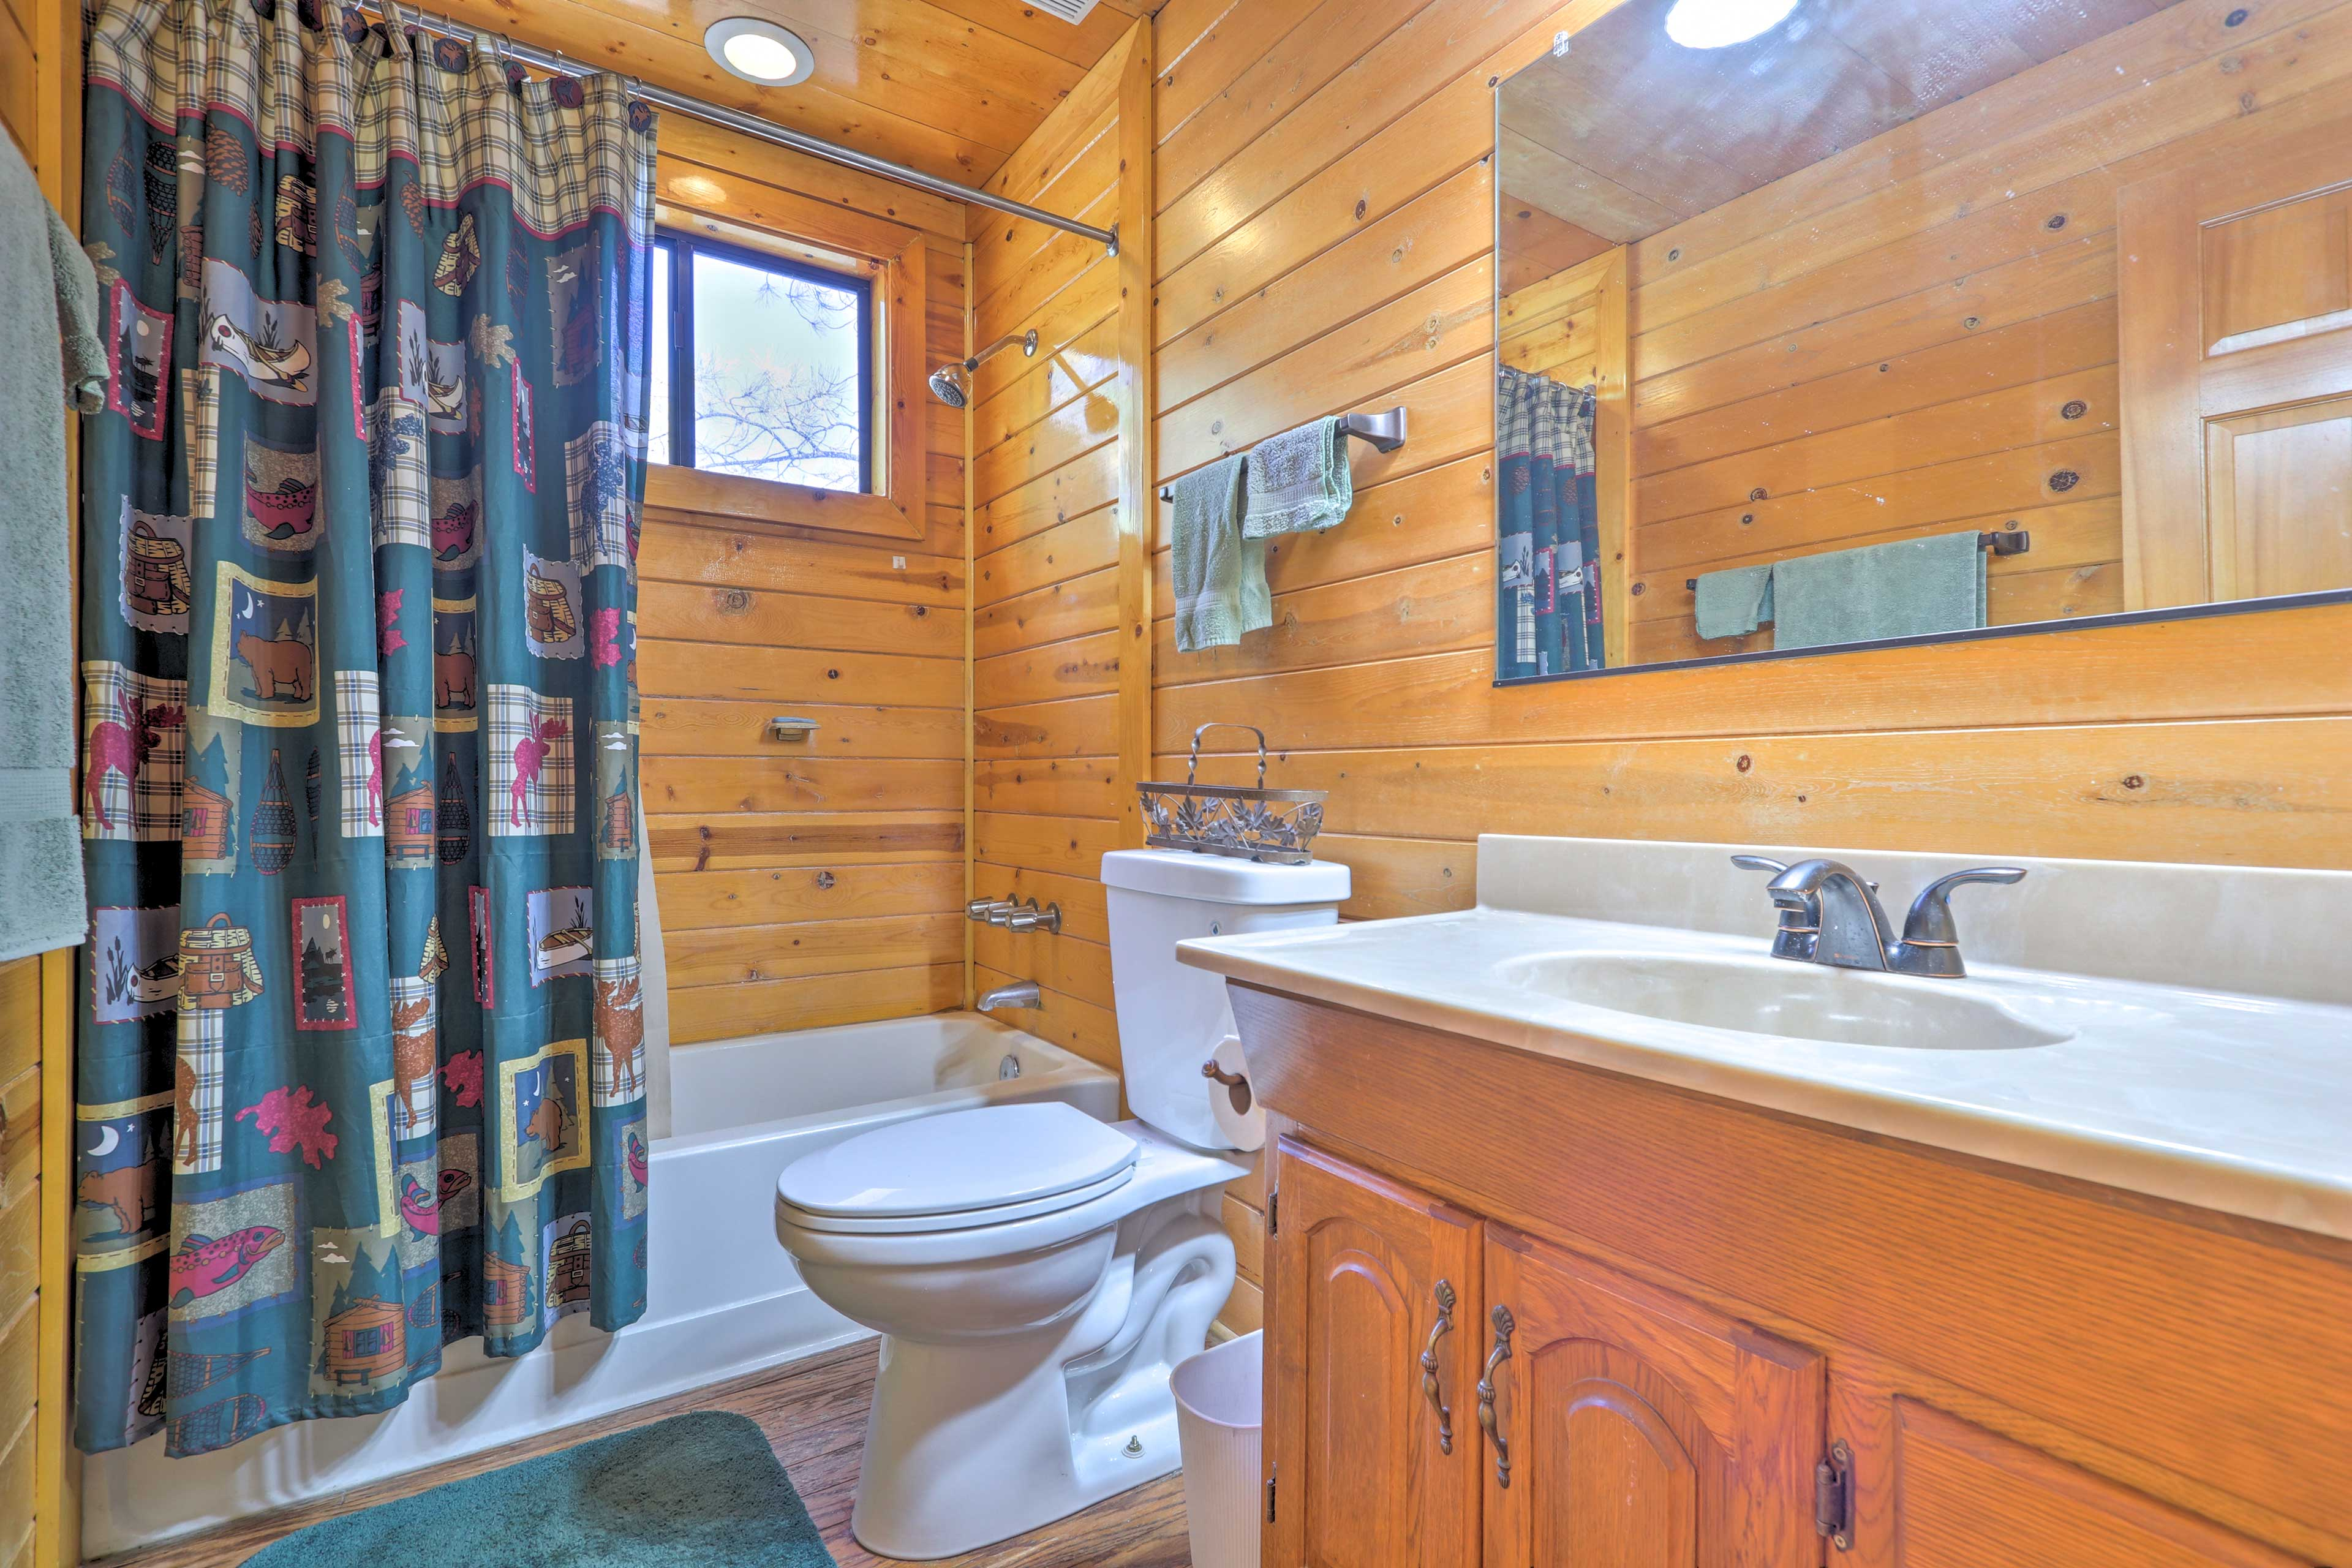 Turn up the heat in the en-suite bathroom for a steamy shower.